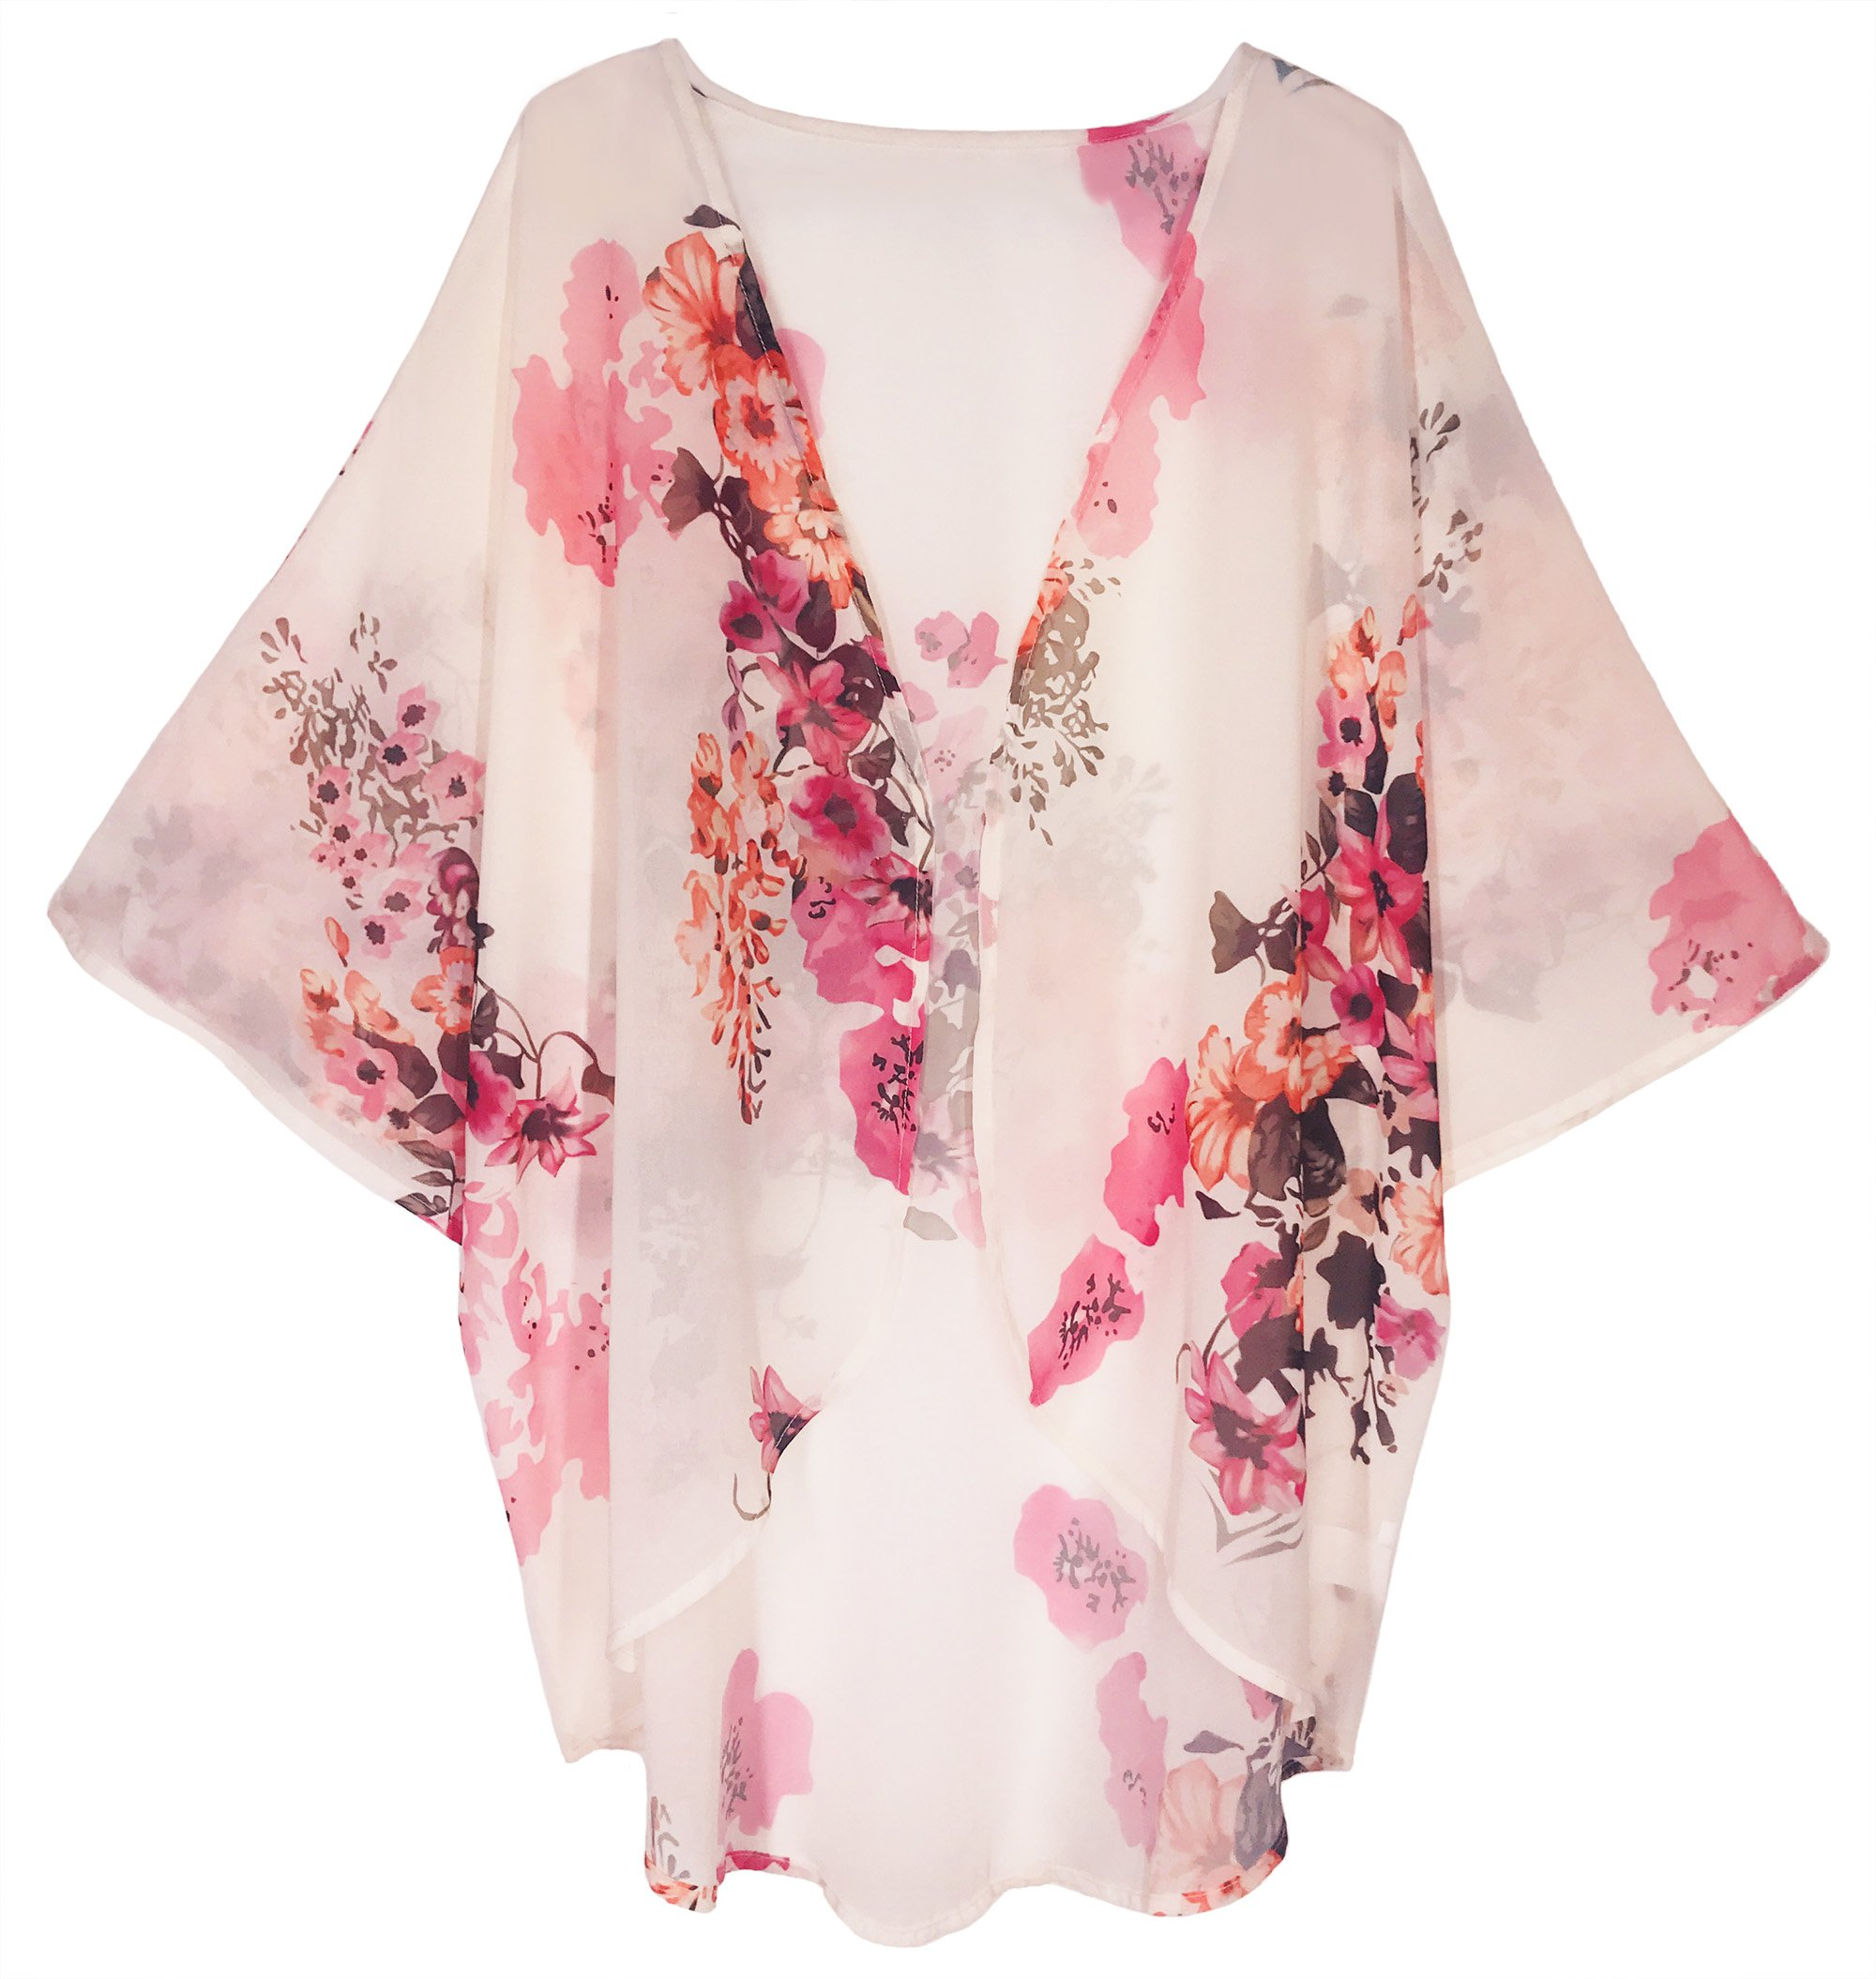 Finoceans Women's Kimono Cardigans Loose Beach Cover up Light Pink Floral M